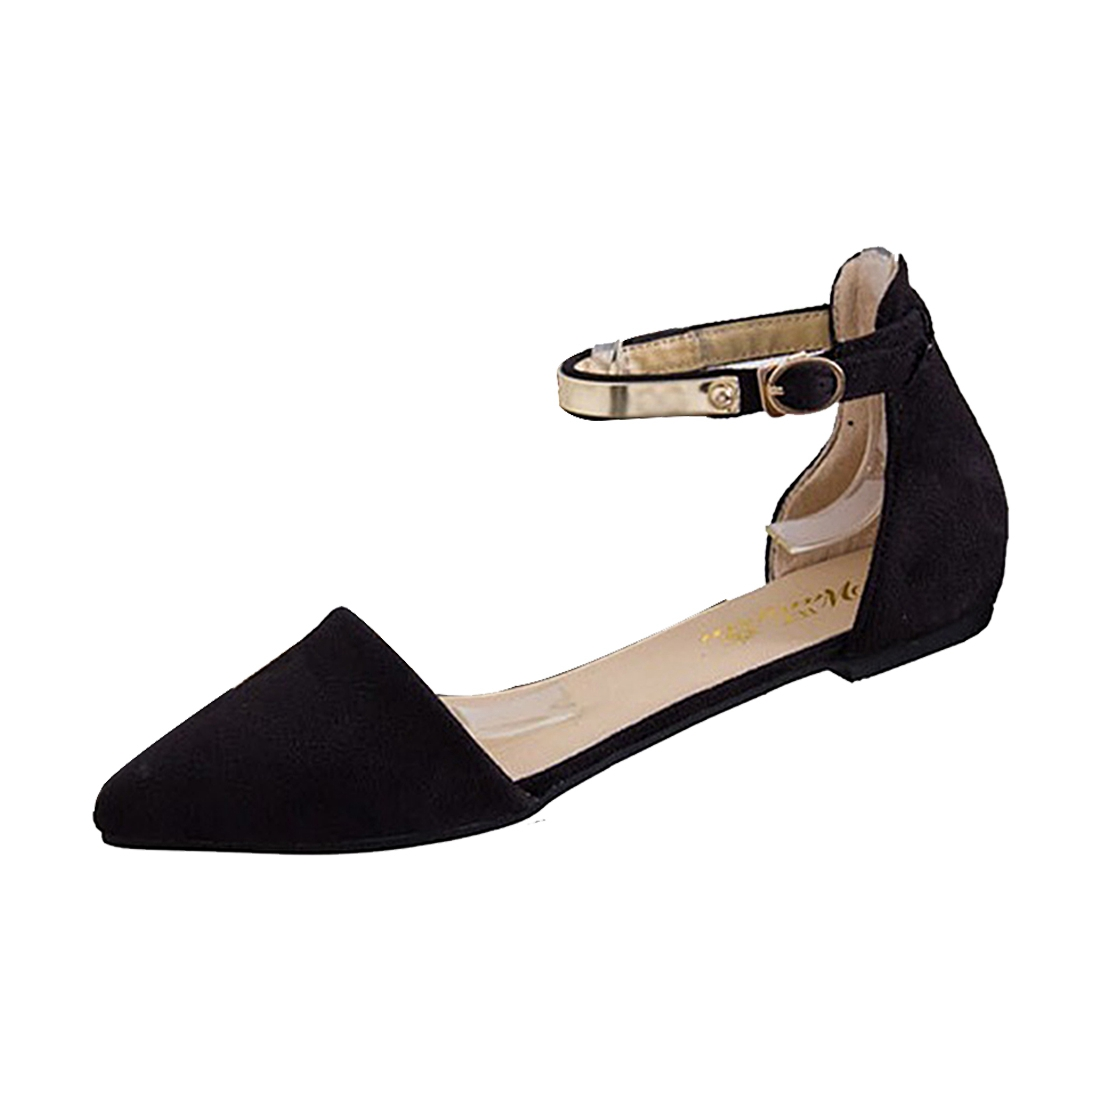 VSEN Hot Woman Shoes Spring Summer Pointed Toe suede Flats Soft Fashion Brief sandals Black US4 new 2017 spring summer women shoes pointed toe high quality brand fashion womens flats ladies plus size 41 sweet flock t179